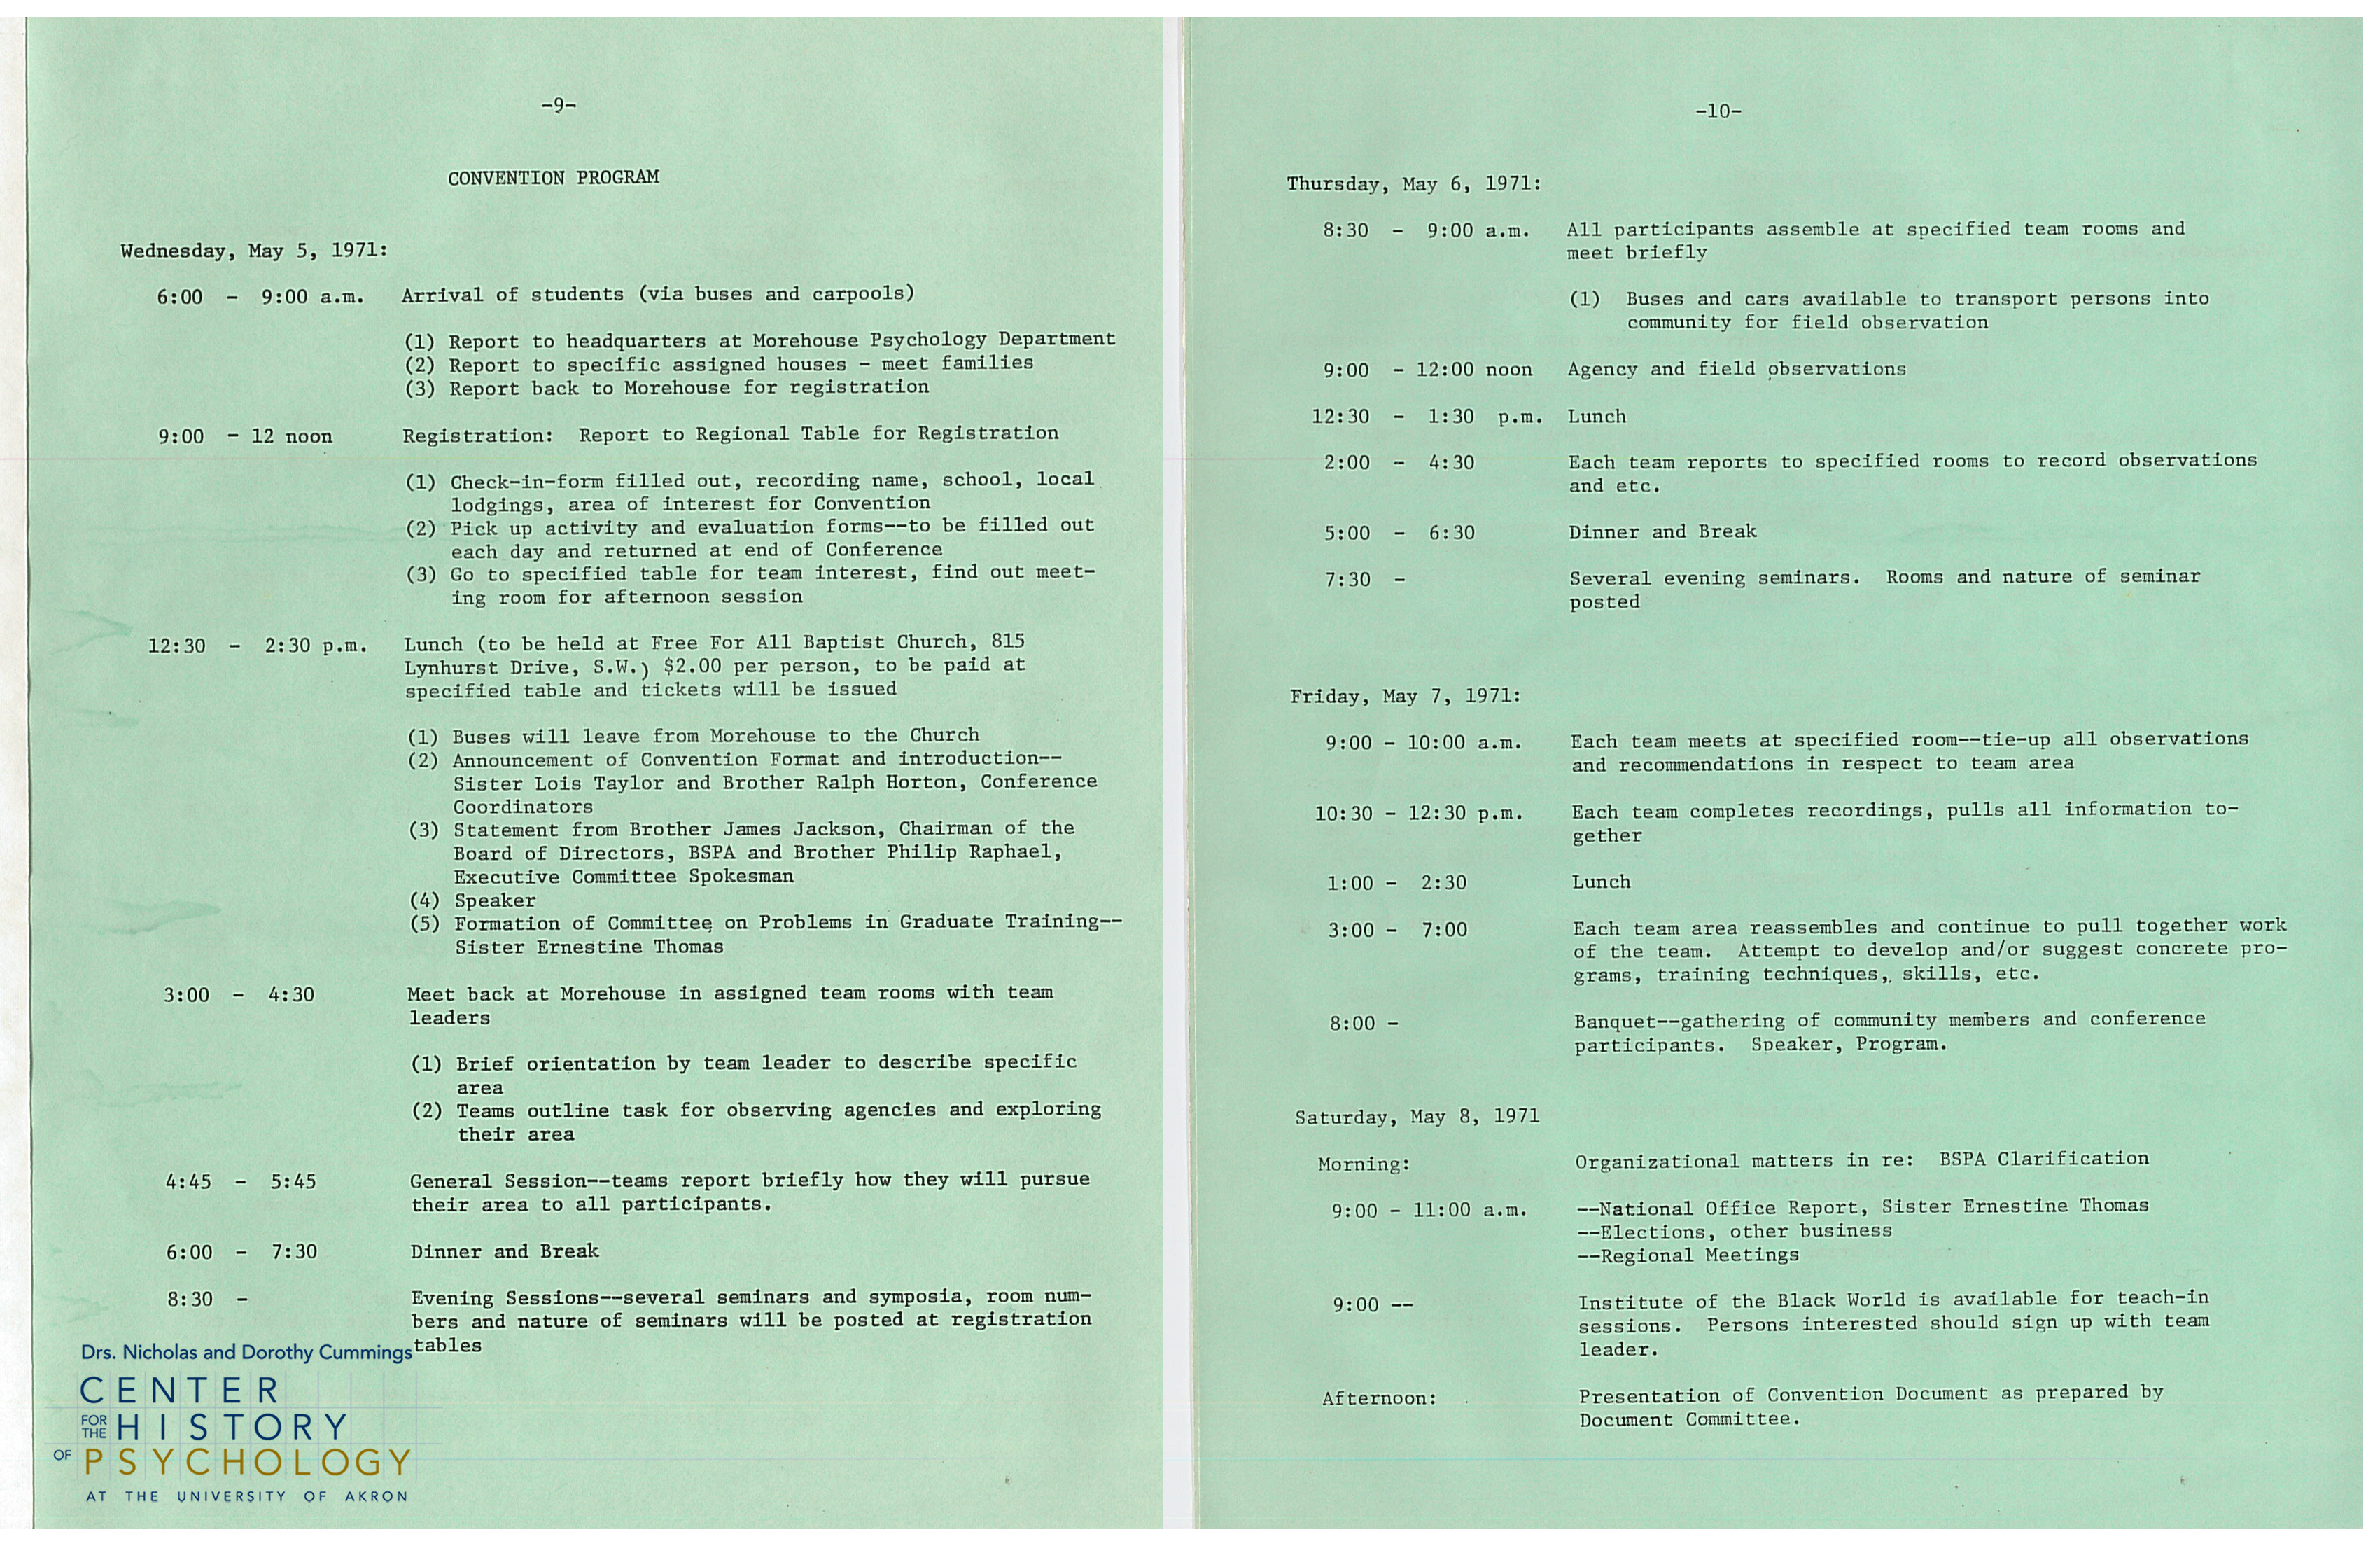 SPSSI_Box743_Folder6_BSPA1971ConventionProgram_BLOG_WATERMARK